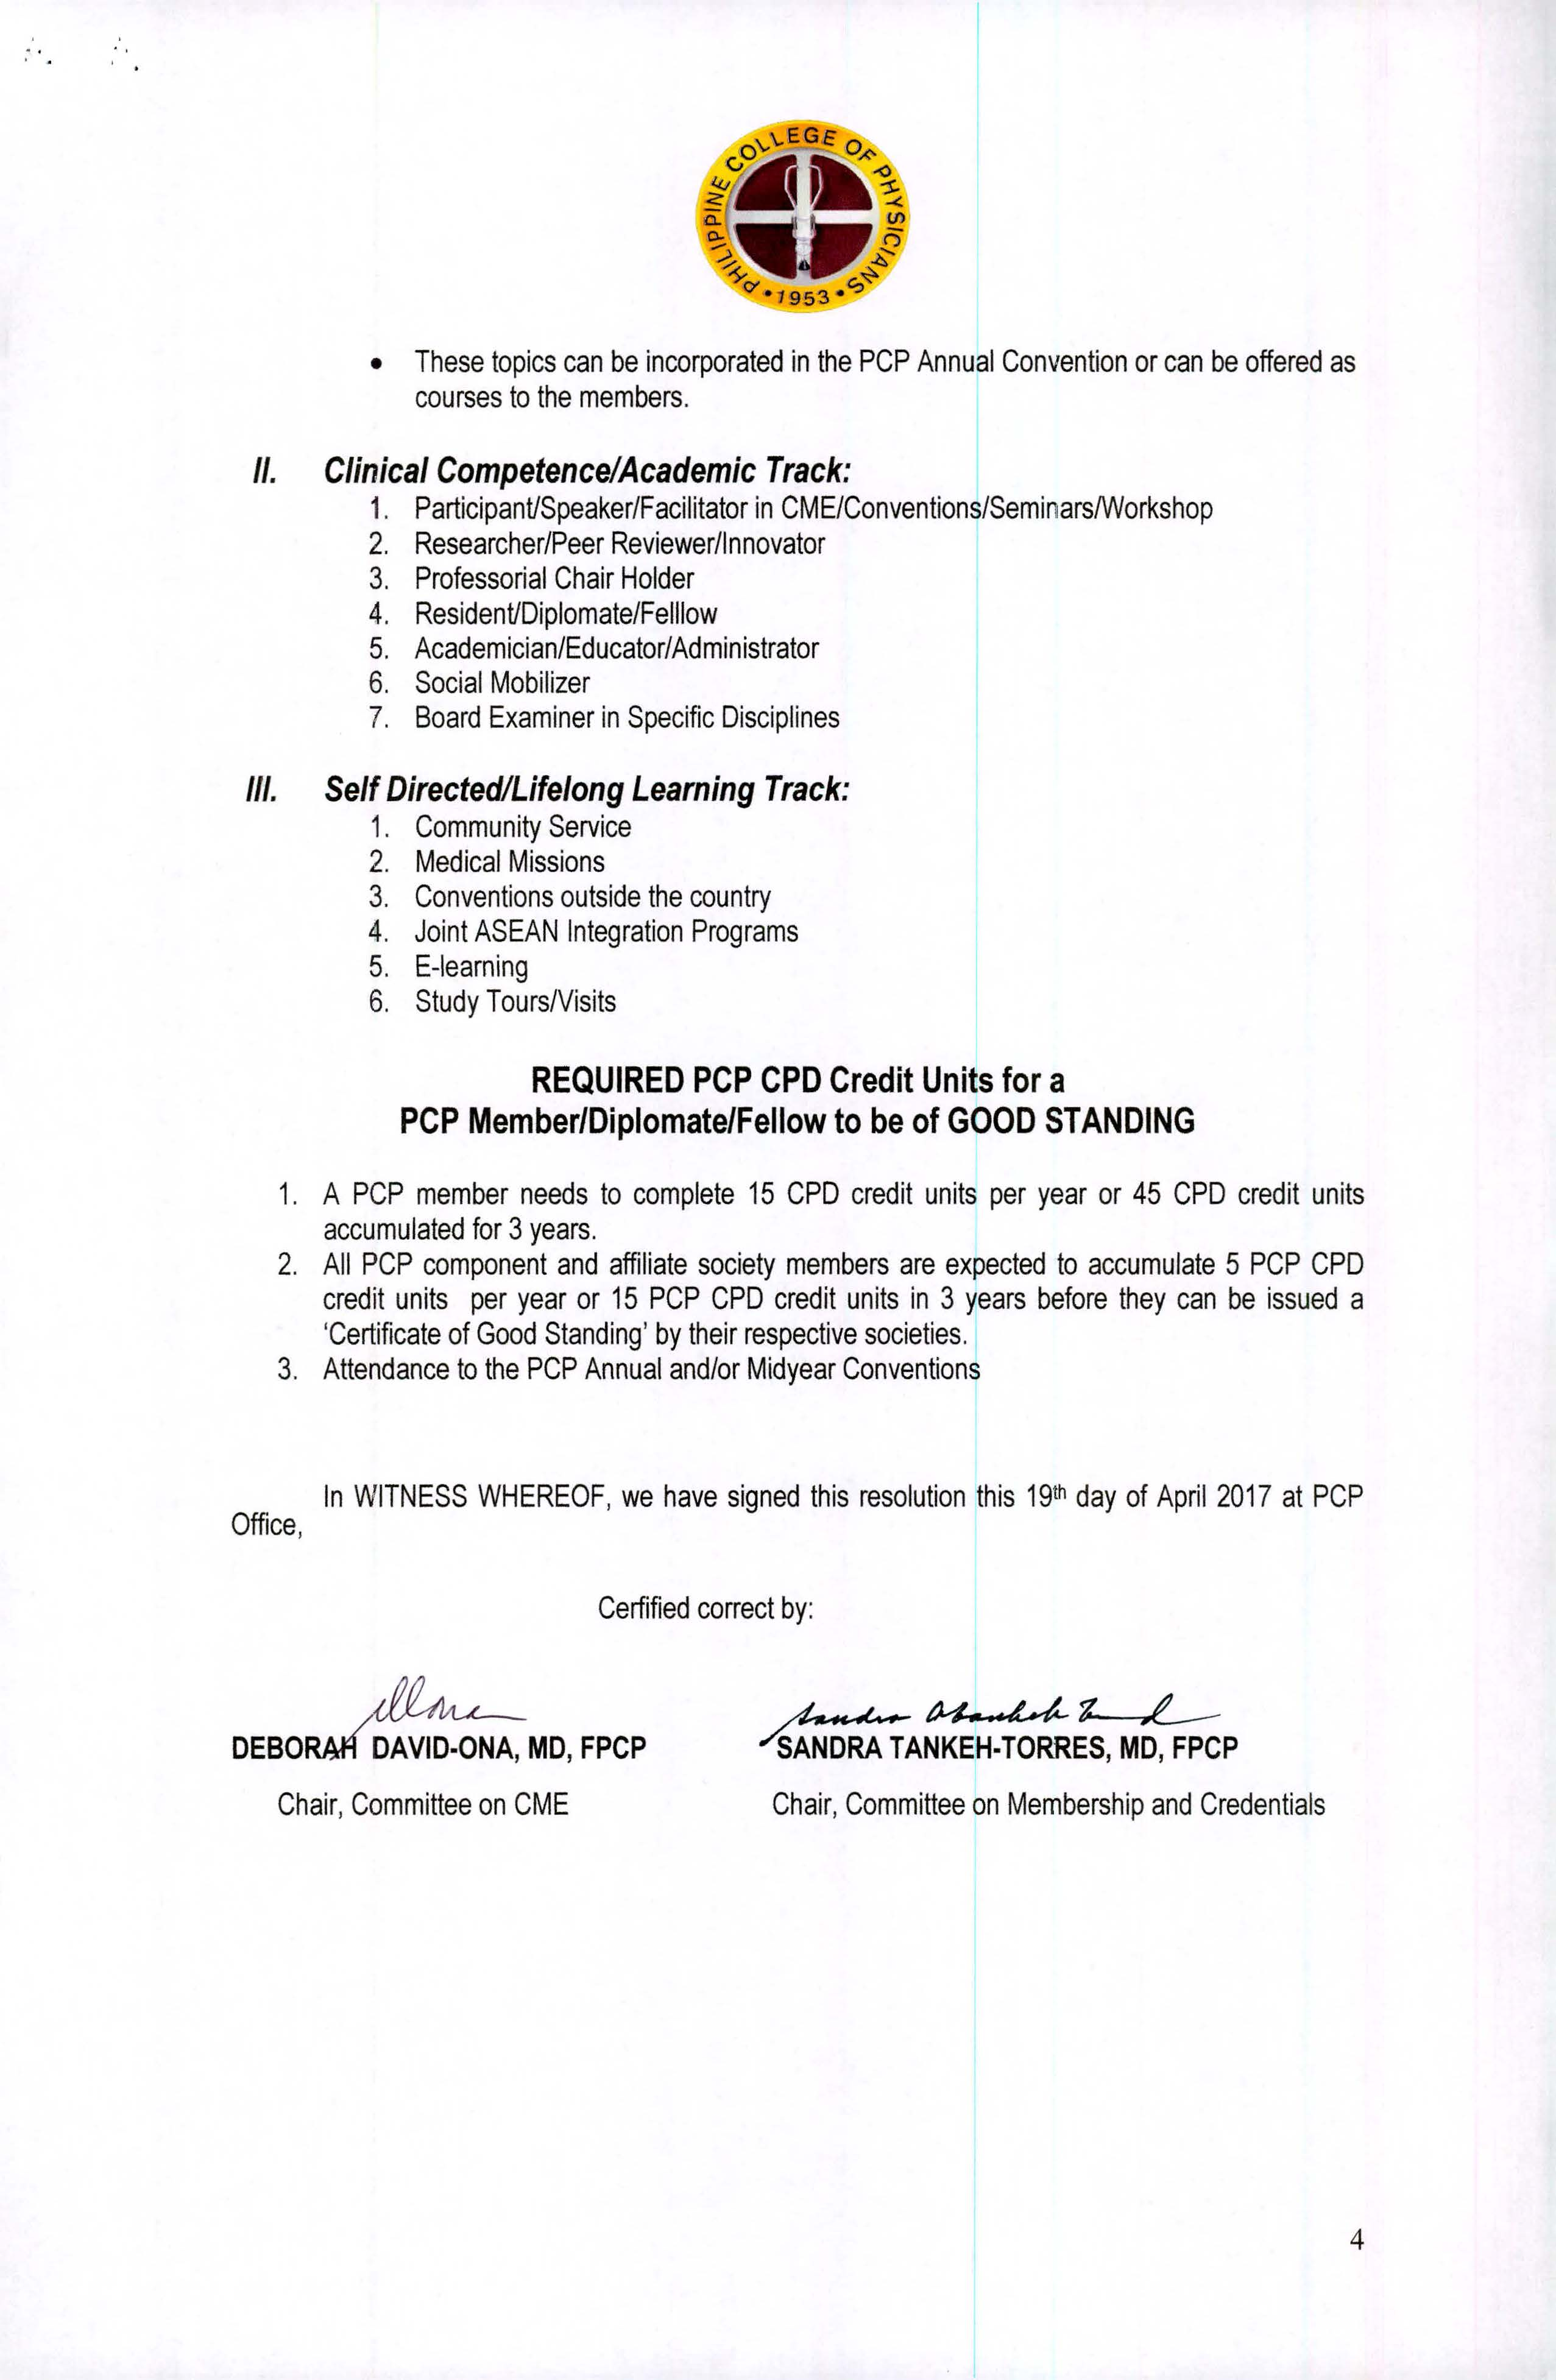 PCP CPD Board Resolution 10 wsignatures Page 4